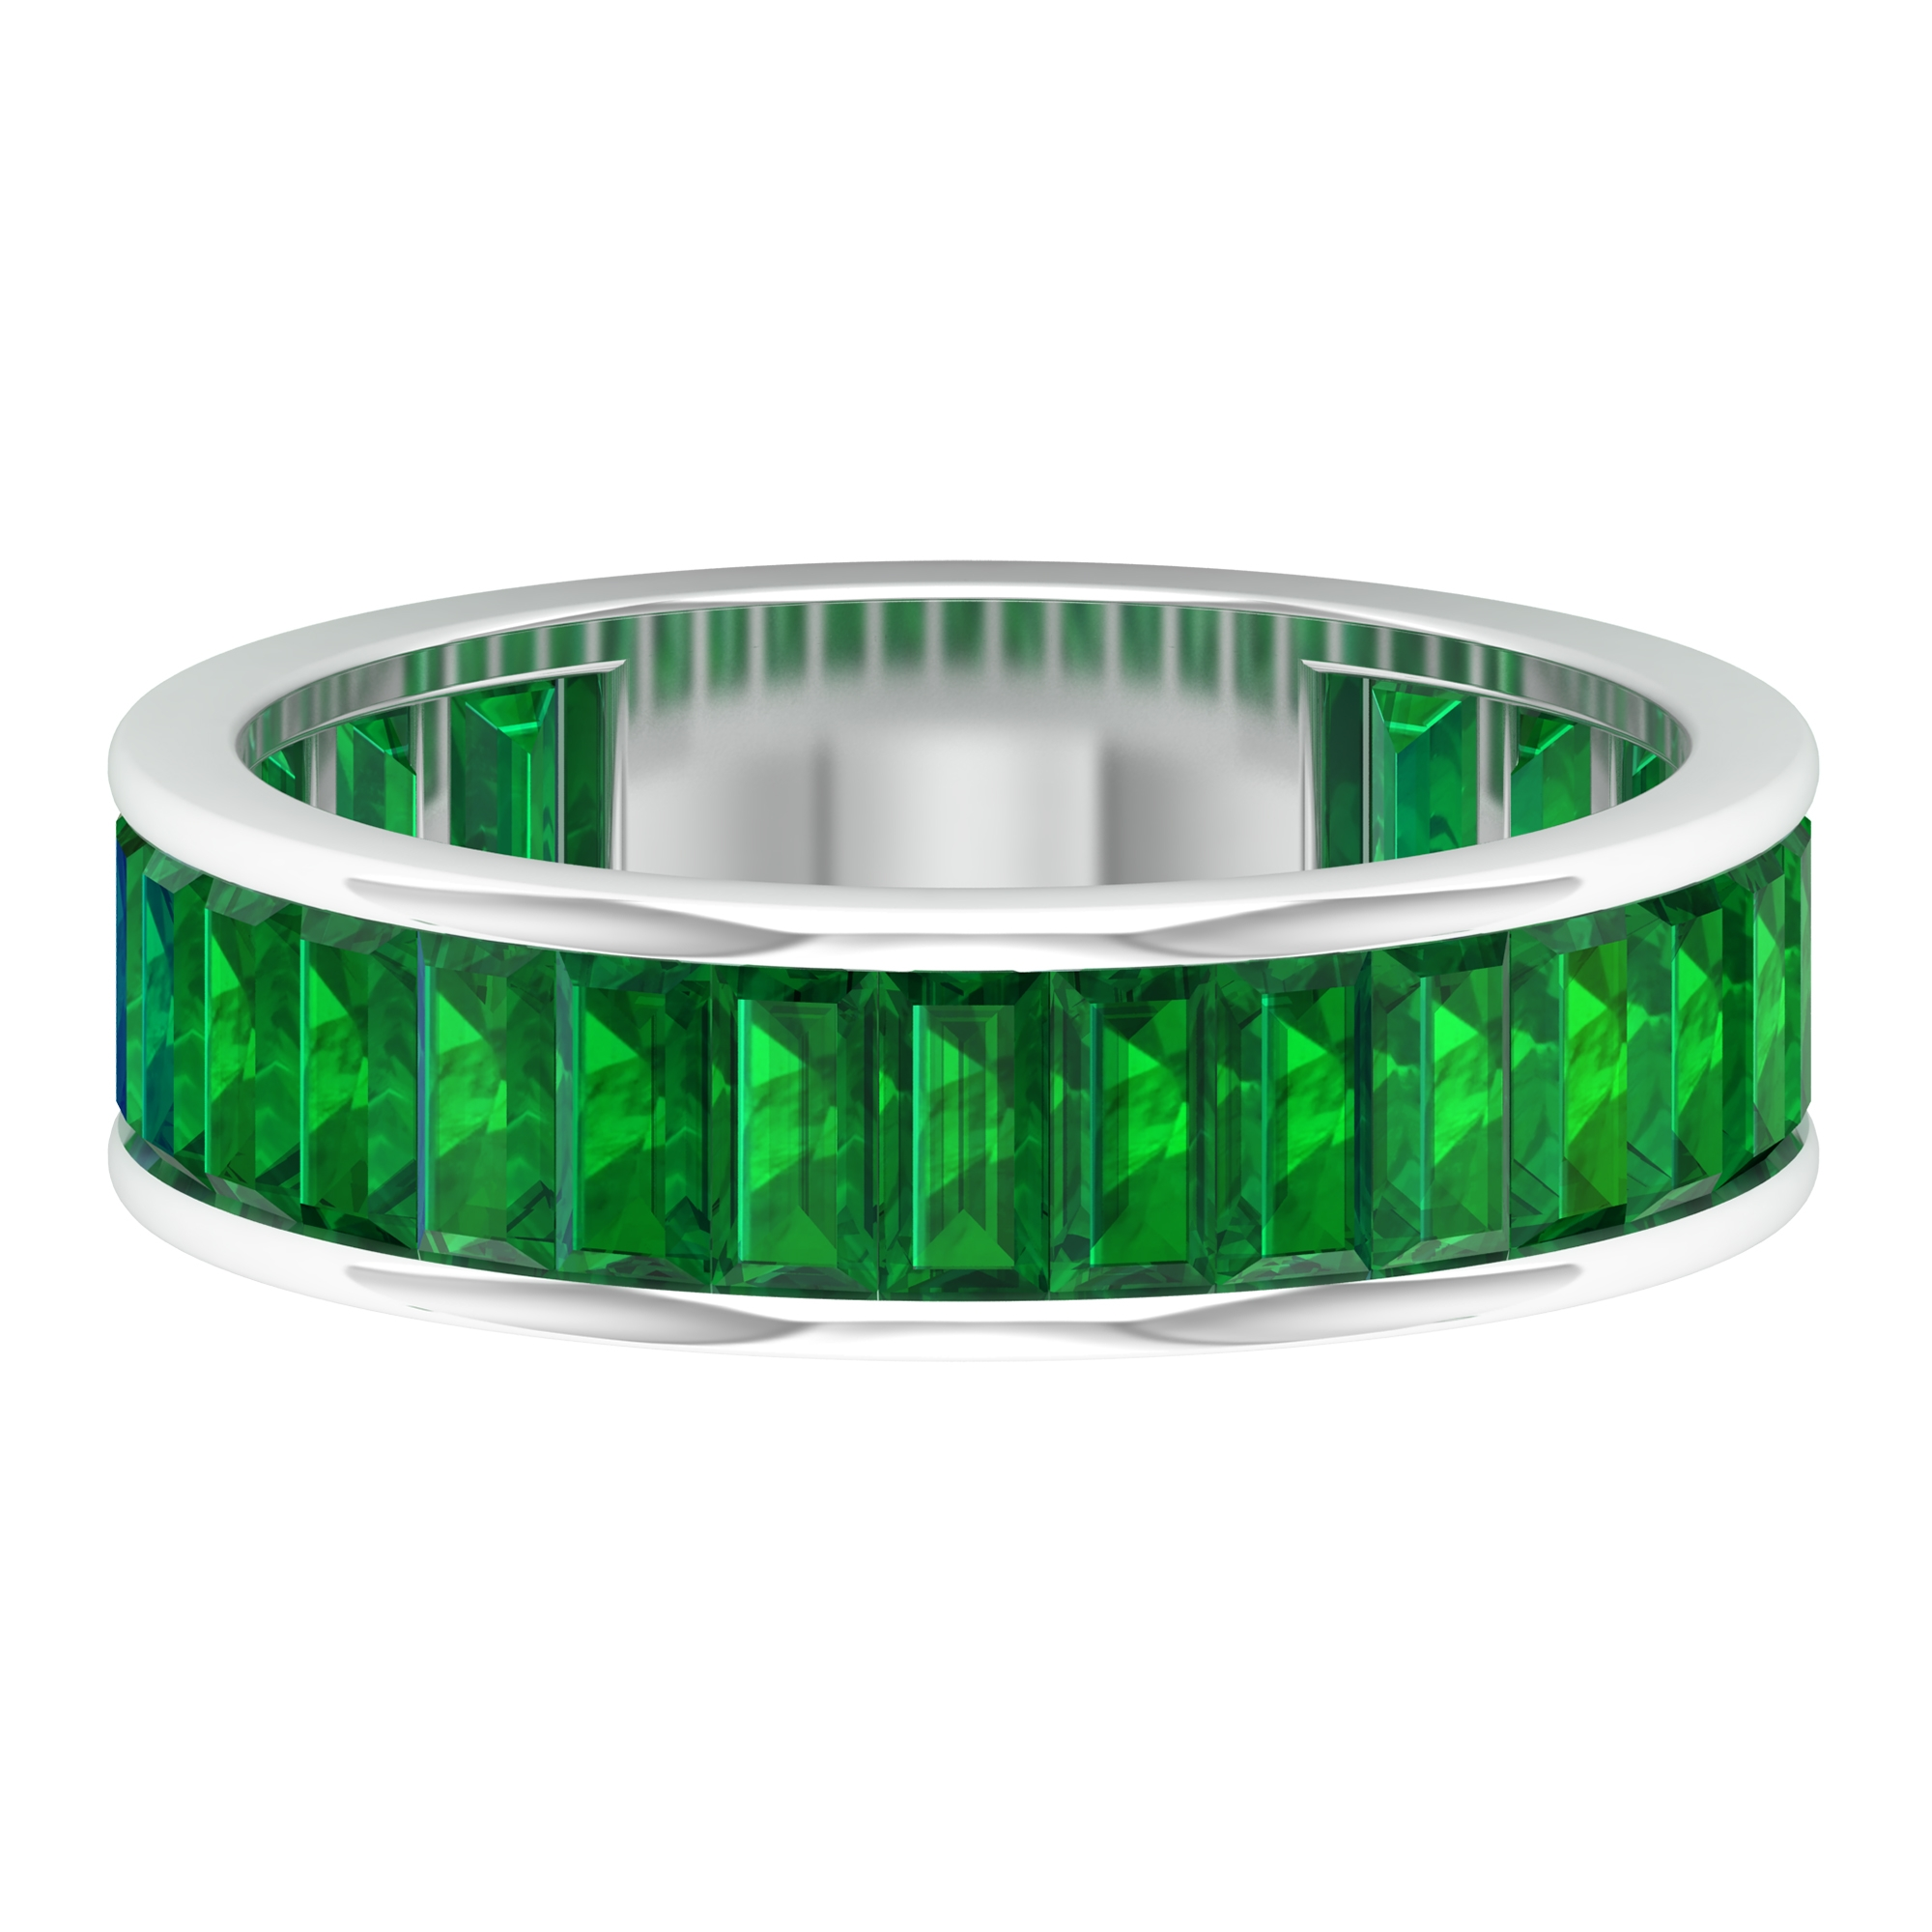 May Birthstone 3.25 CT Baguette Cut Emerald Band Ring in Channel Setting